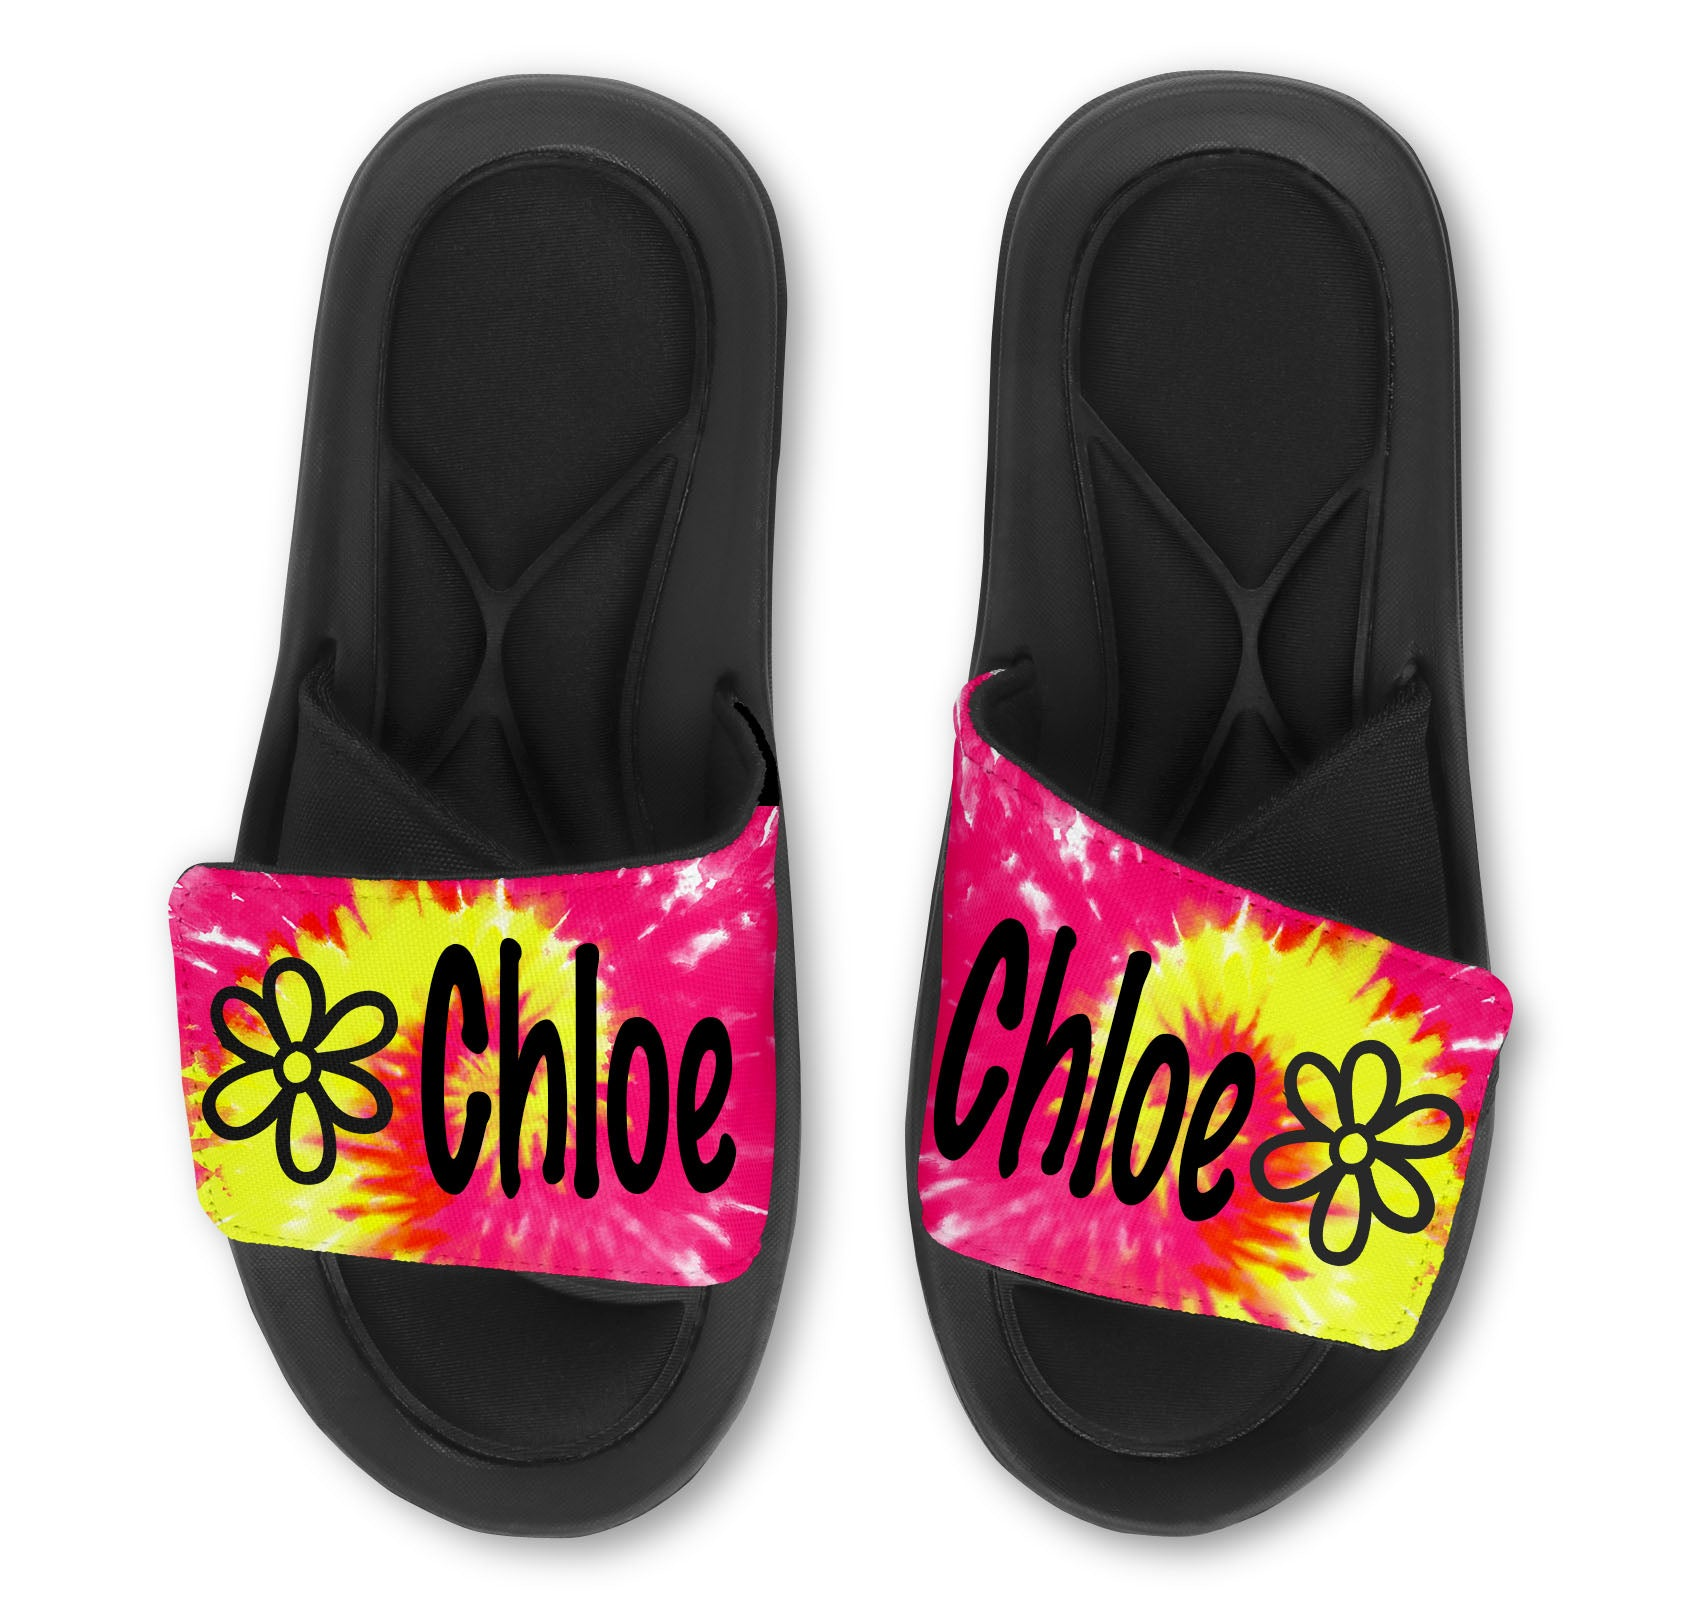 Flower Tie Dye Custom Slides / Sandals - Choose your Background!